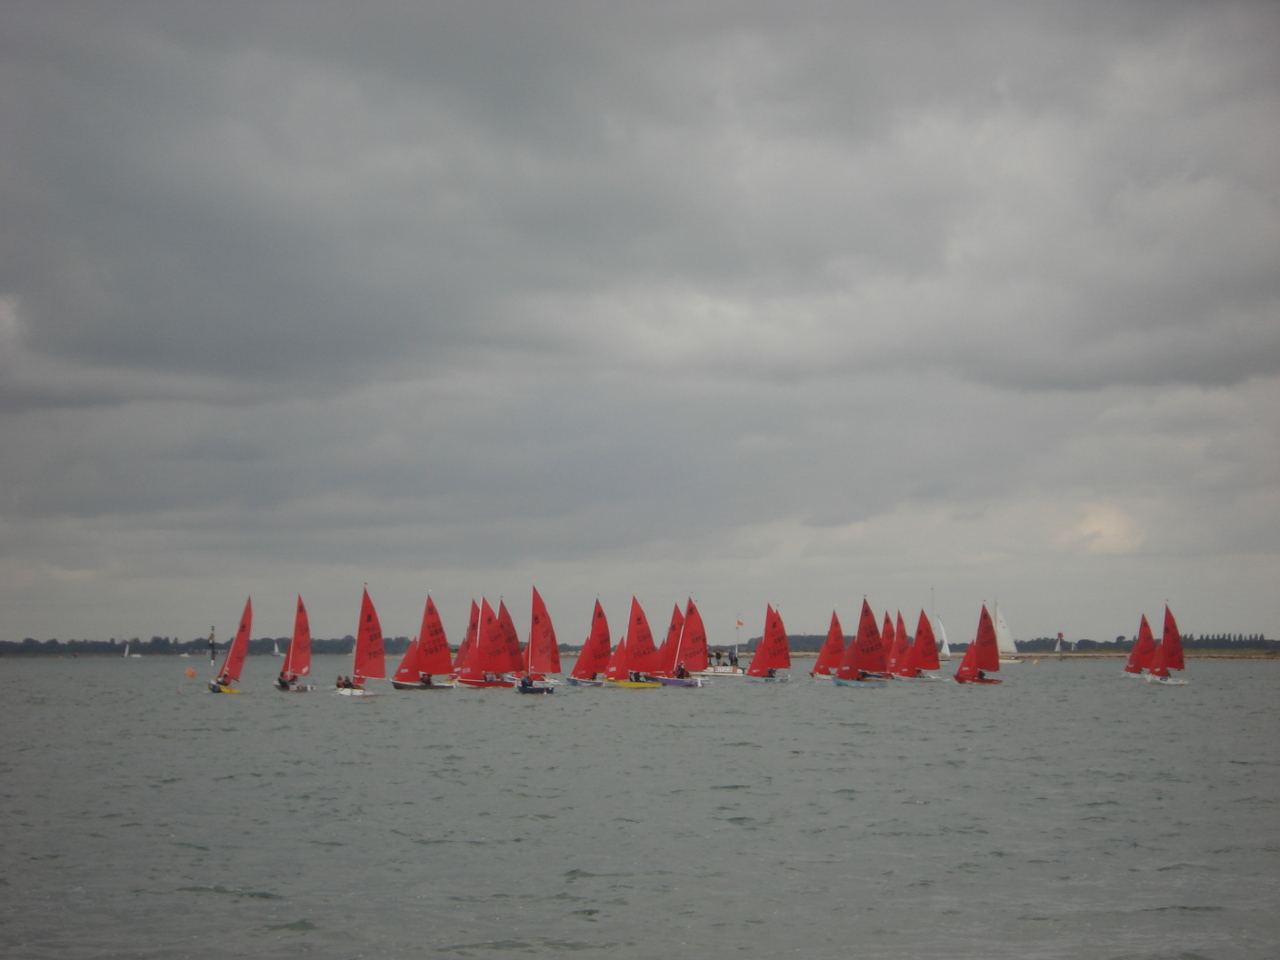 A fleet of Mirror starting a race in the distance under a cloudy sky